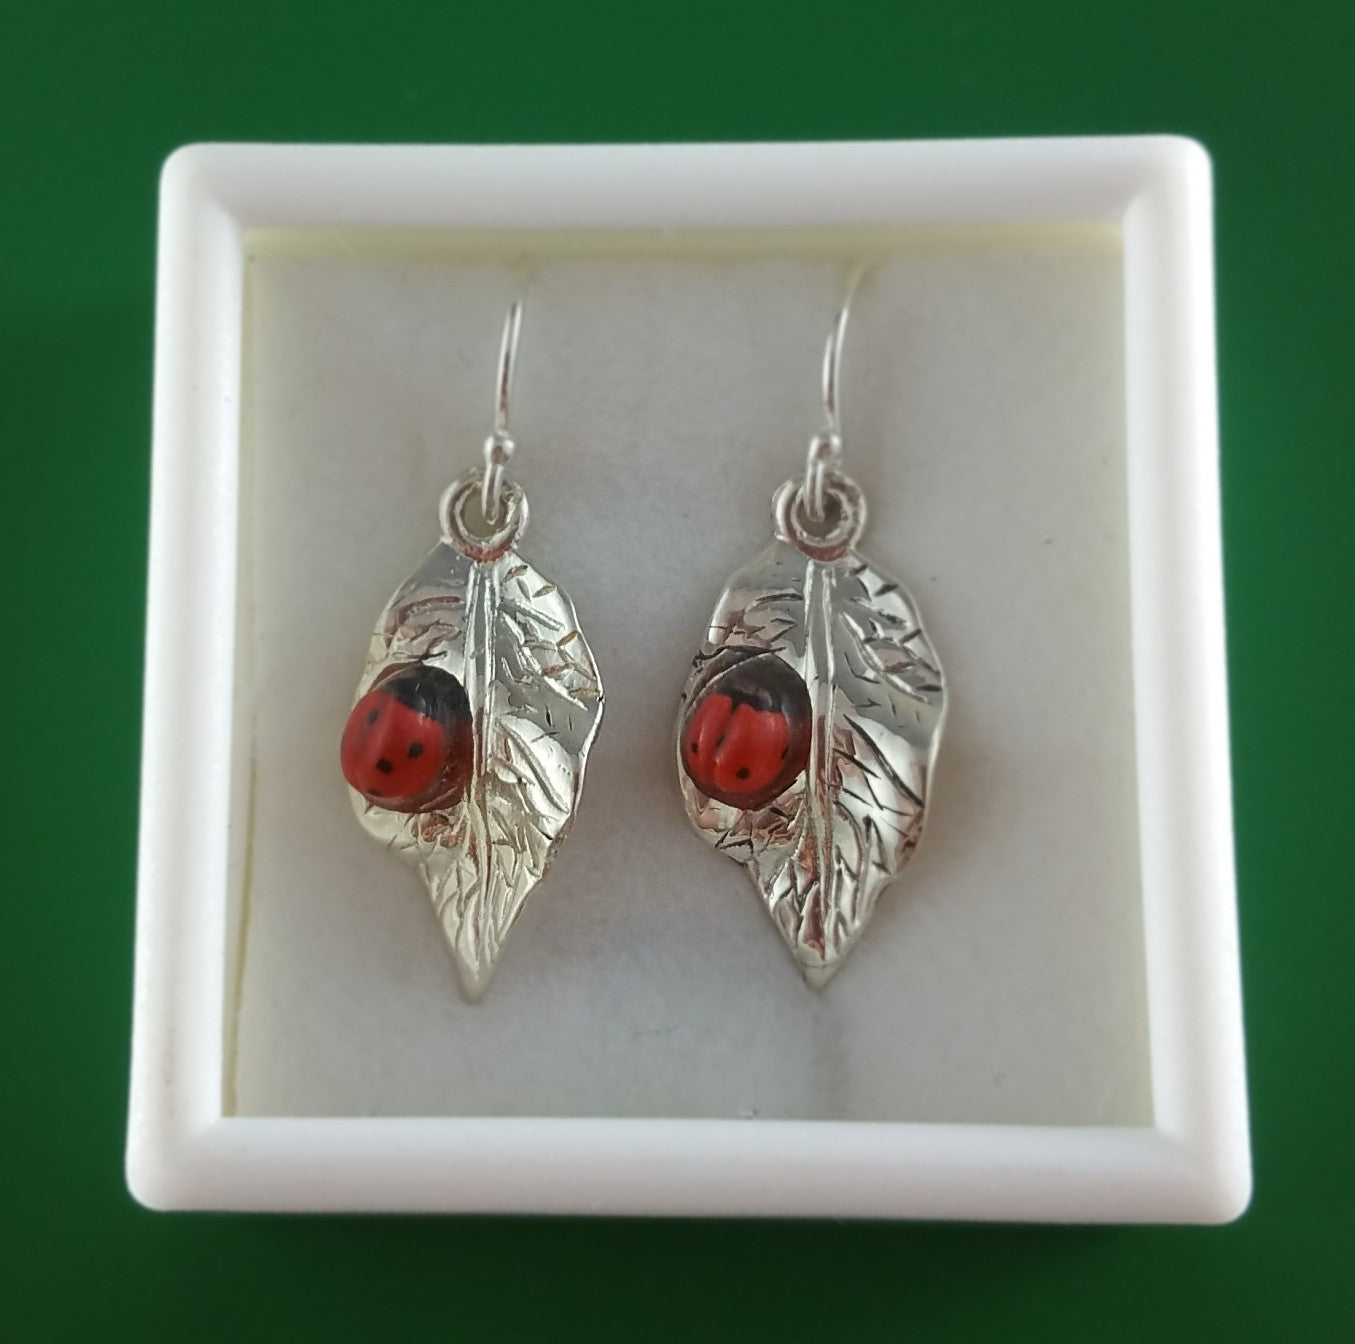 Sterling silver leaves with porcelain ladybug hook earrings by Joseph Chiang